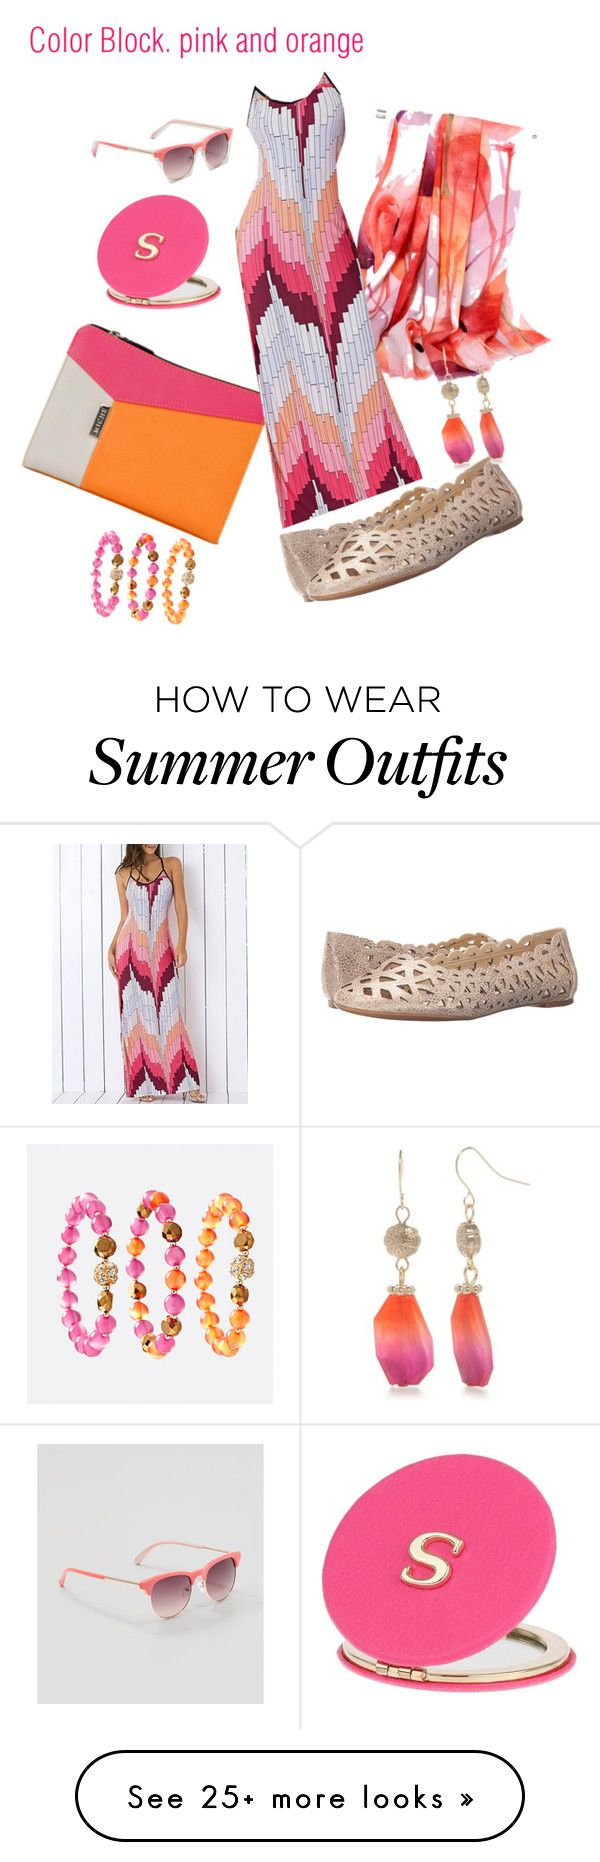 """""""color block. Orange and pink"""" by judyrstinson on Polyvore featuring N..."""